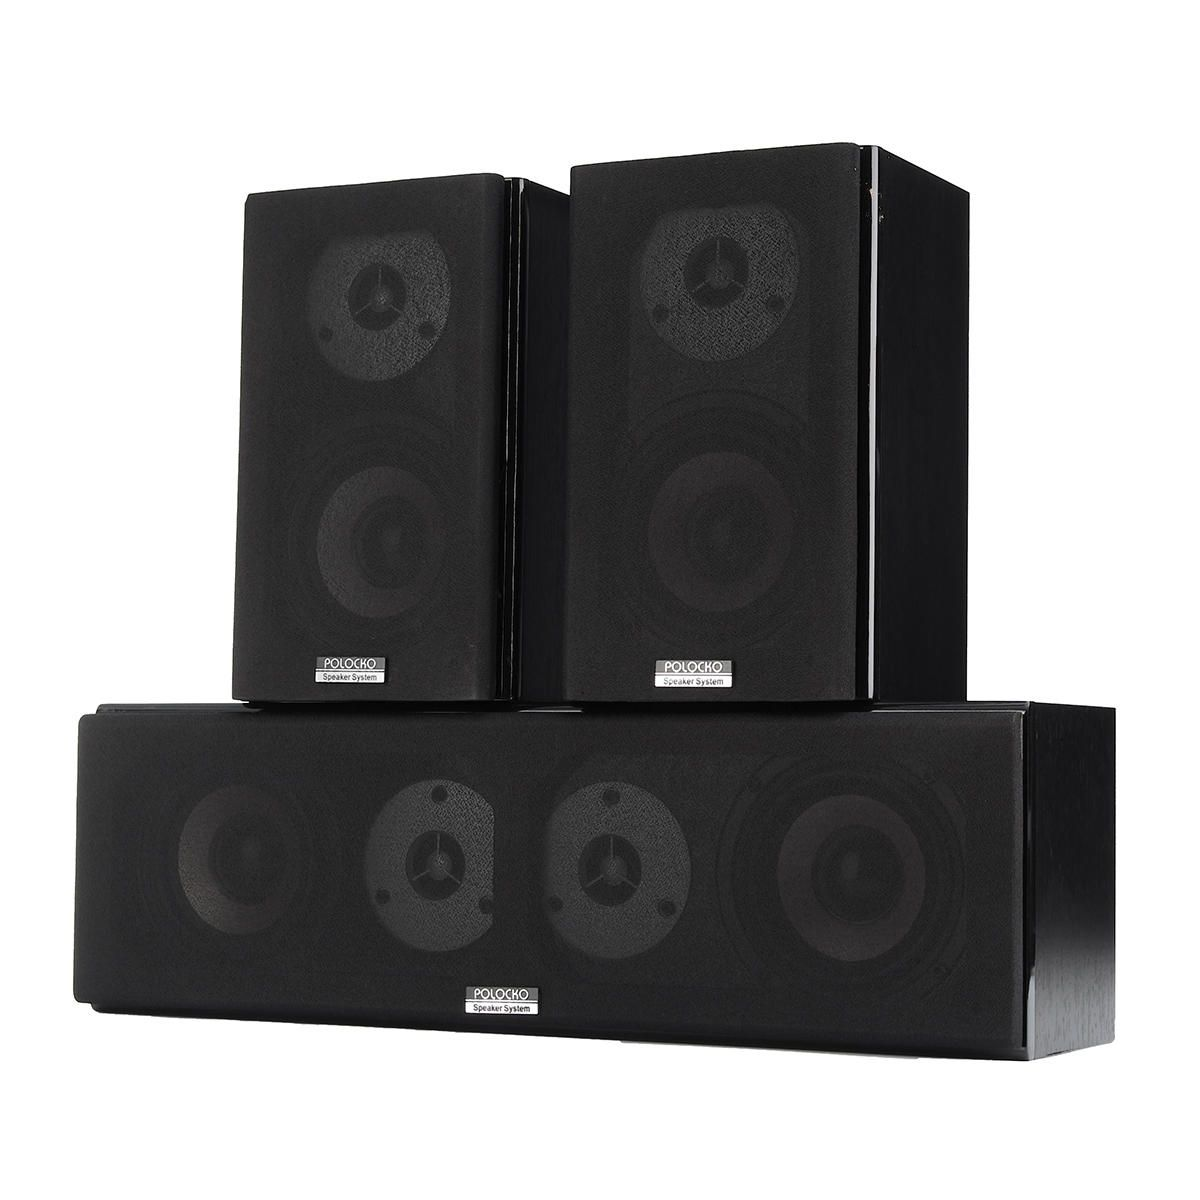 Us 159 99 100w 4 Inch Hifi Double Treble Center Channel Passive Home Audio Speaker Theatre System Home Audio Video From Electronics On Banggood Com